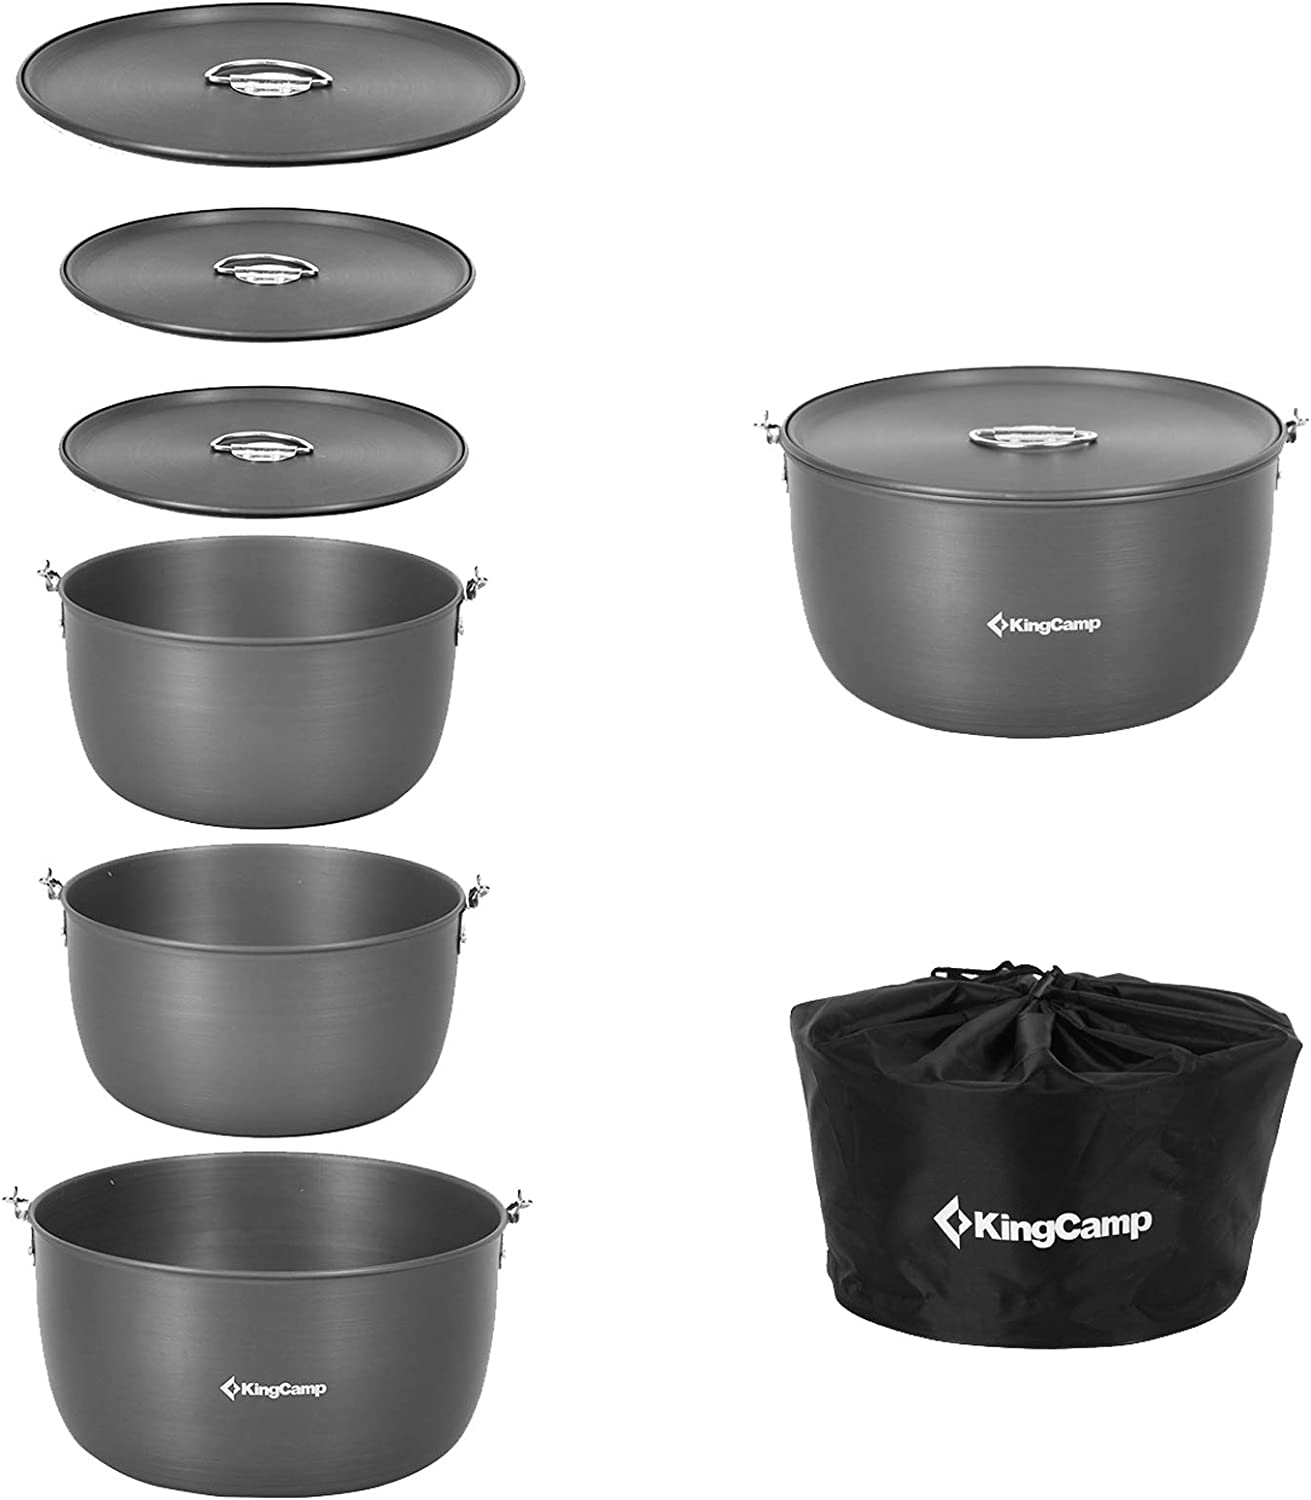 KingCamp Hanging Pot Camping Cookware Set 6-8 Persons 3PCS Dual Purpose Hard-Anodized Aluminum Lightweight Pots with Lids for Hiking Backpacking Campfire Backyard Picnic Outdoor Travel